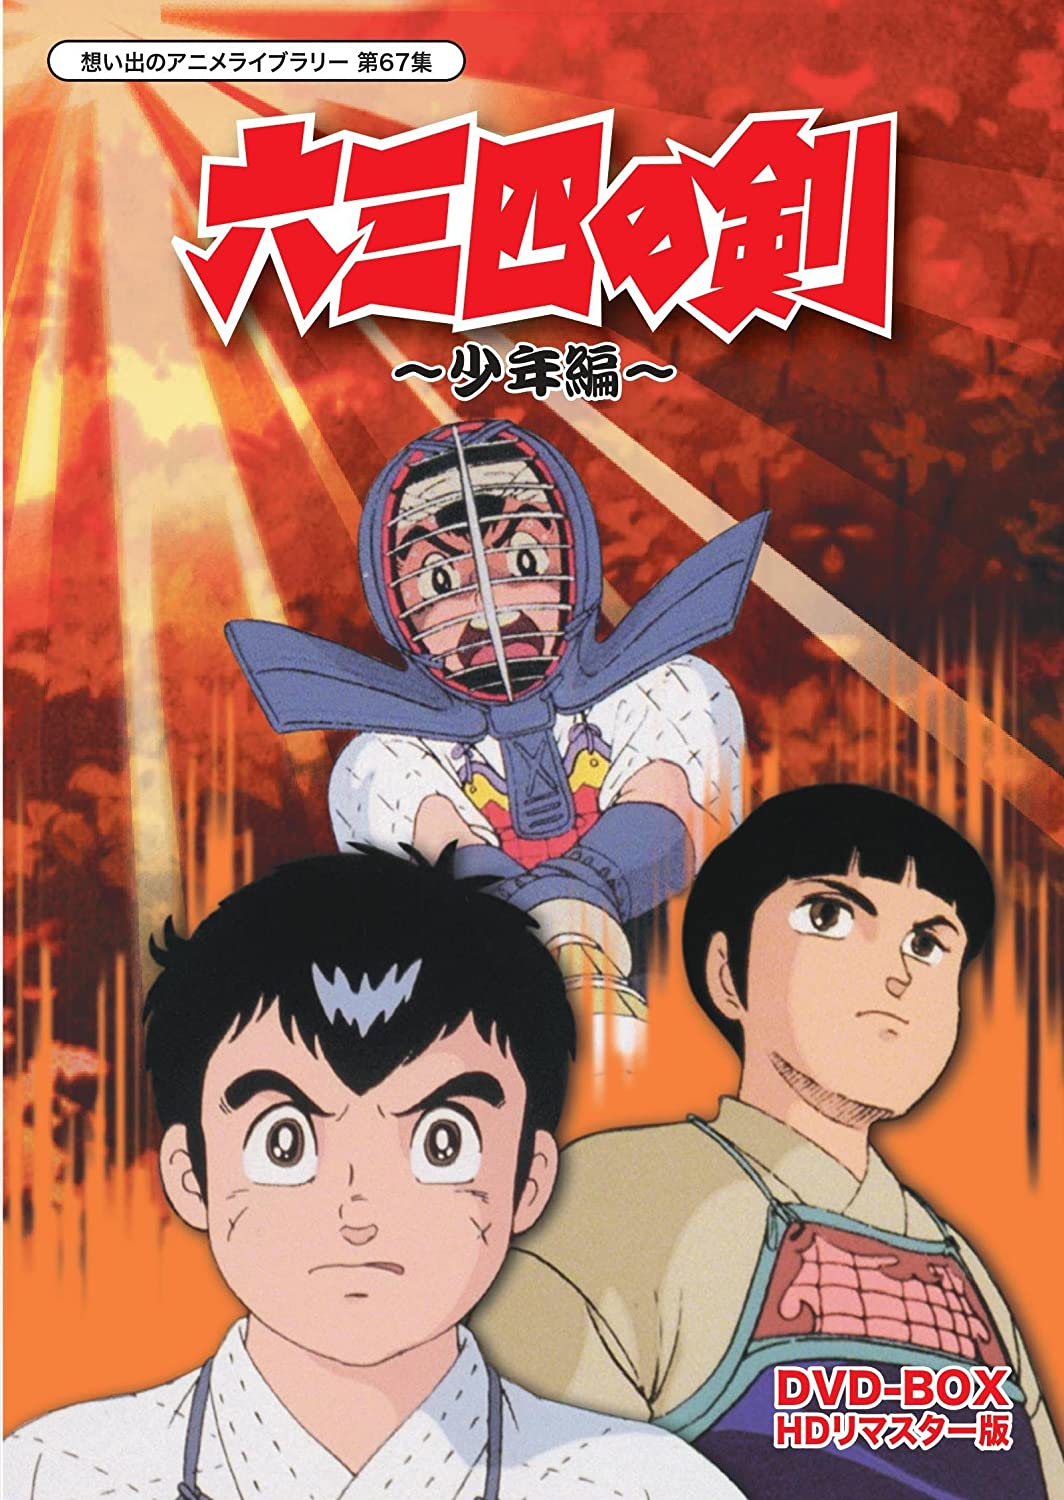 Sixty-four Swords Shonen Hen DVD-BOX HD Remastered [Remembrance Anime Library Vol. 67] JAPANESE EDITION